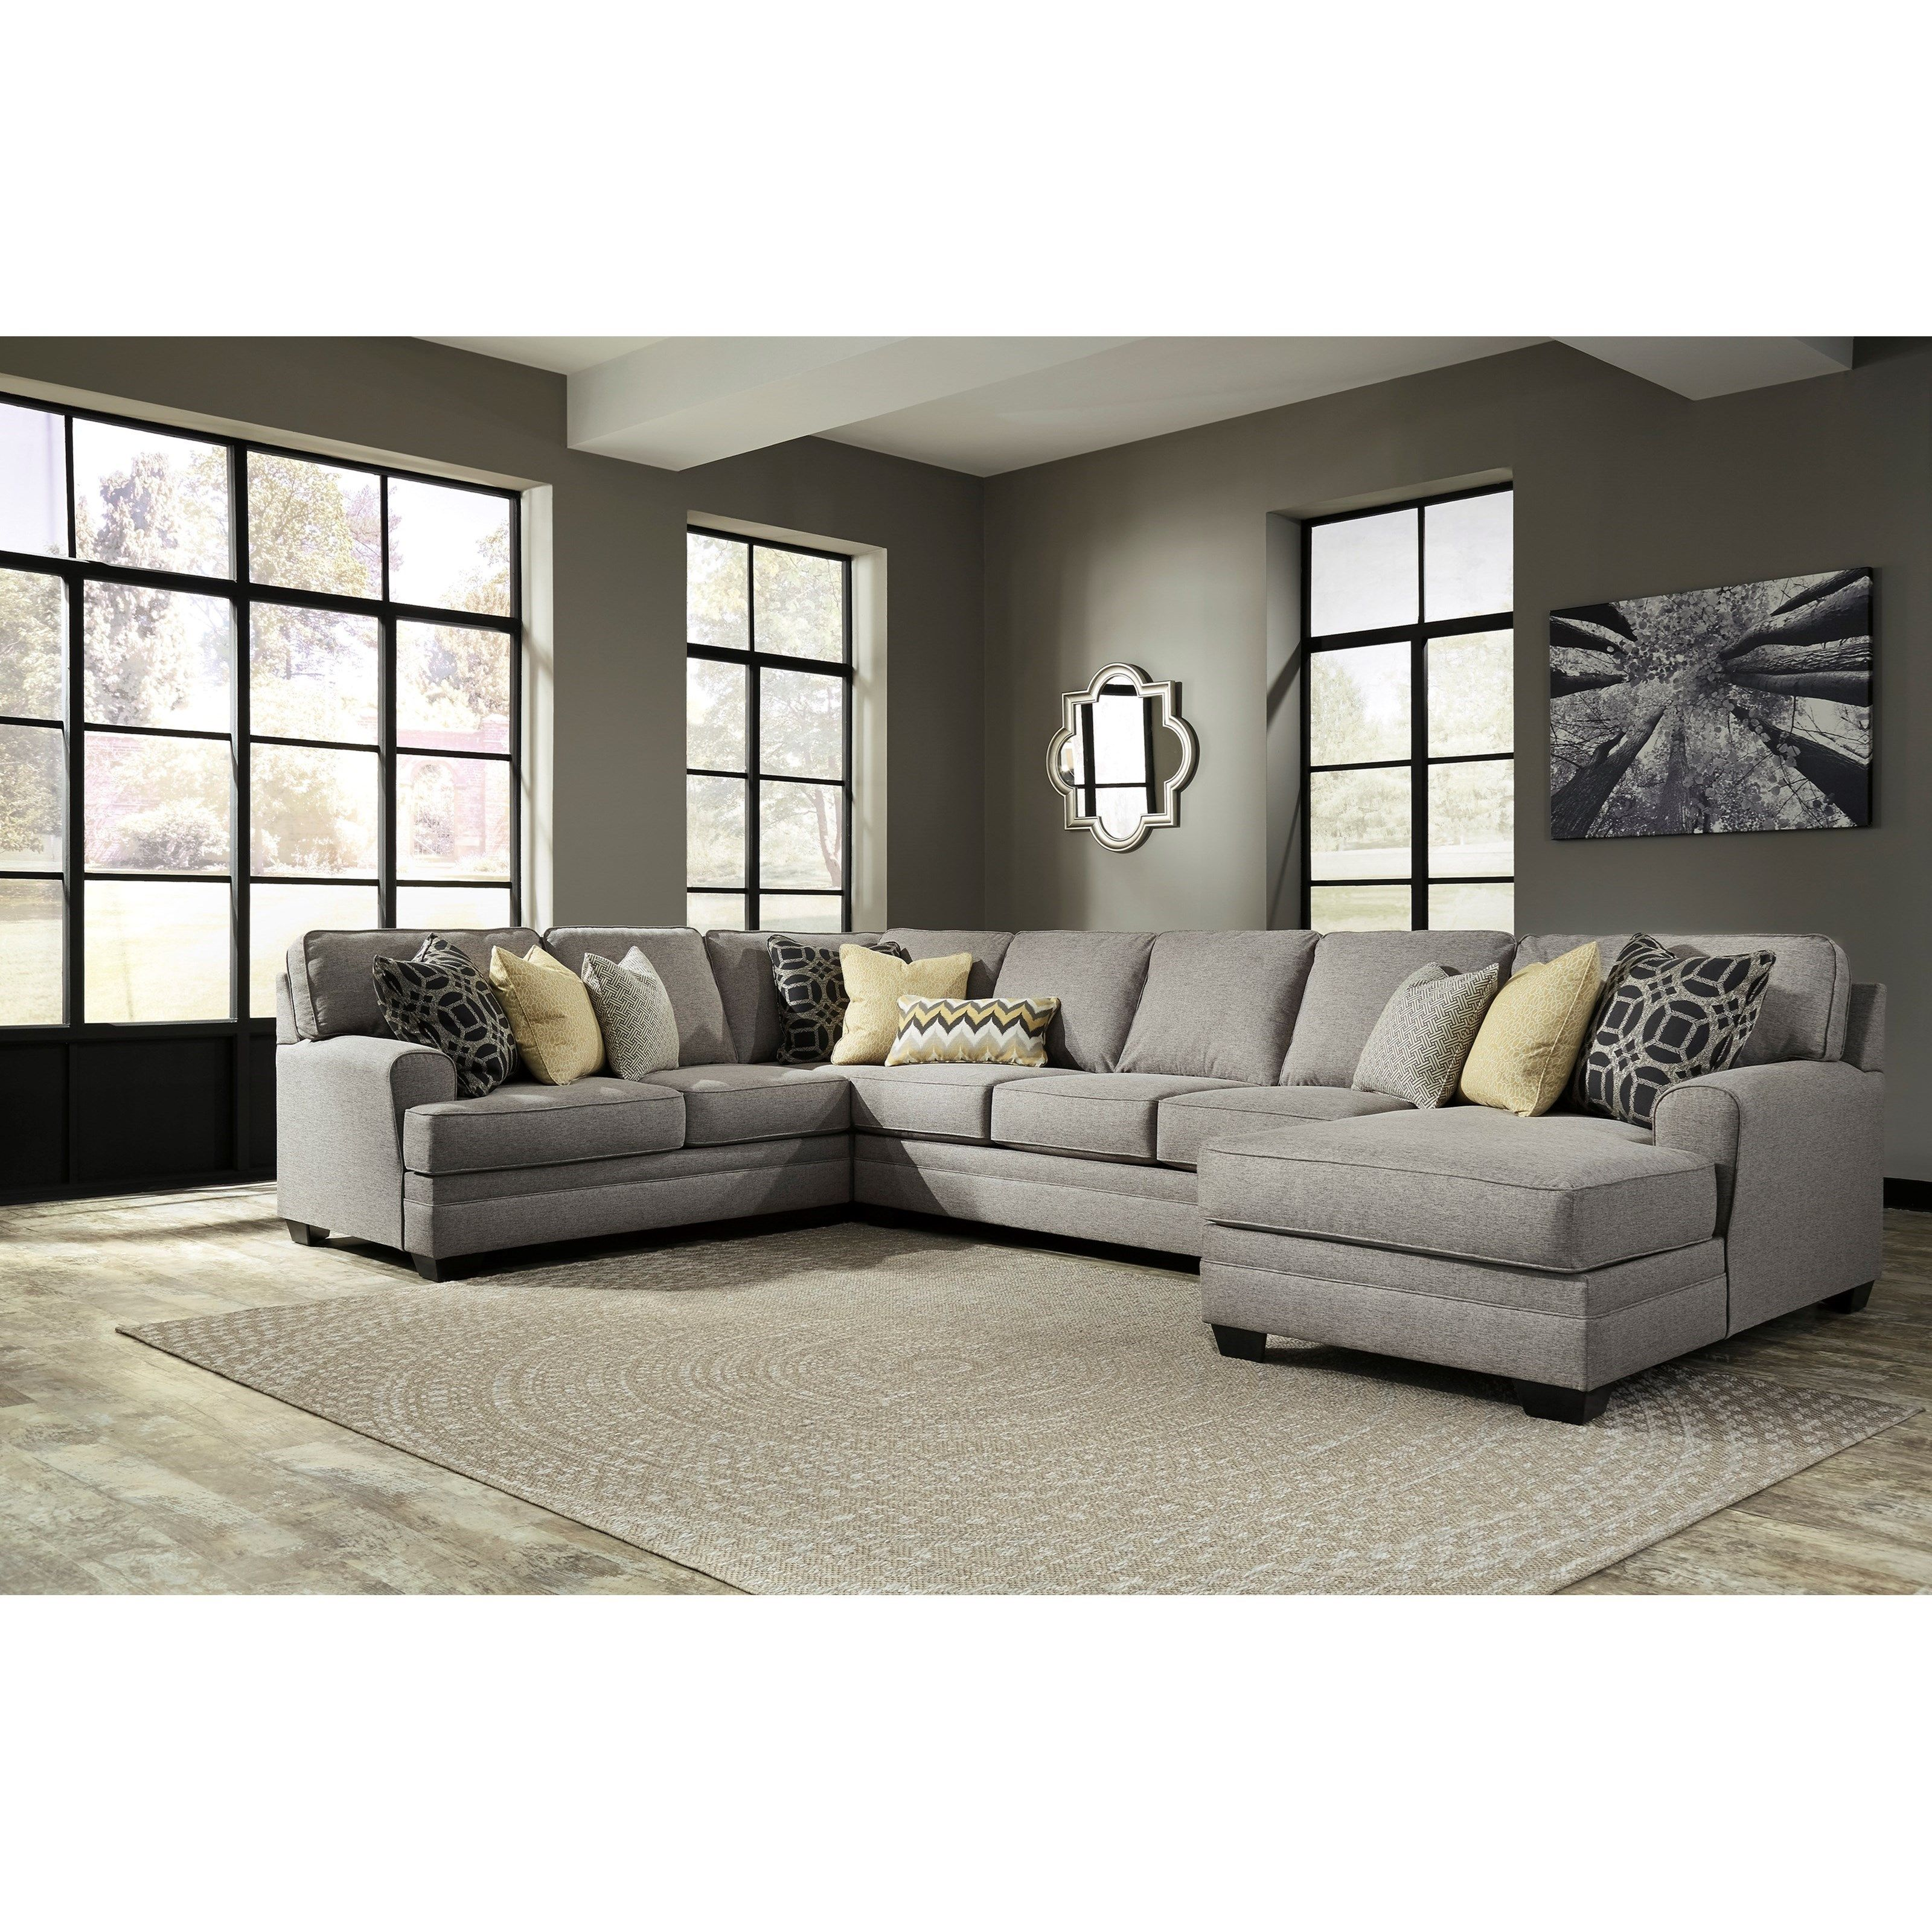 Remarkable Contemporary 4 Piece Sectional With Chaise Armless Sofa Bralicious Painted Fabric Chair Ideas Braliciousco